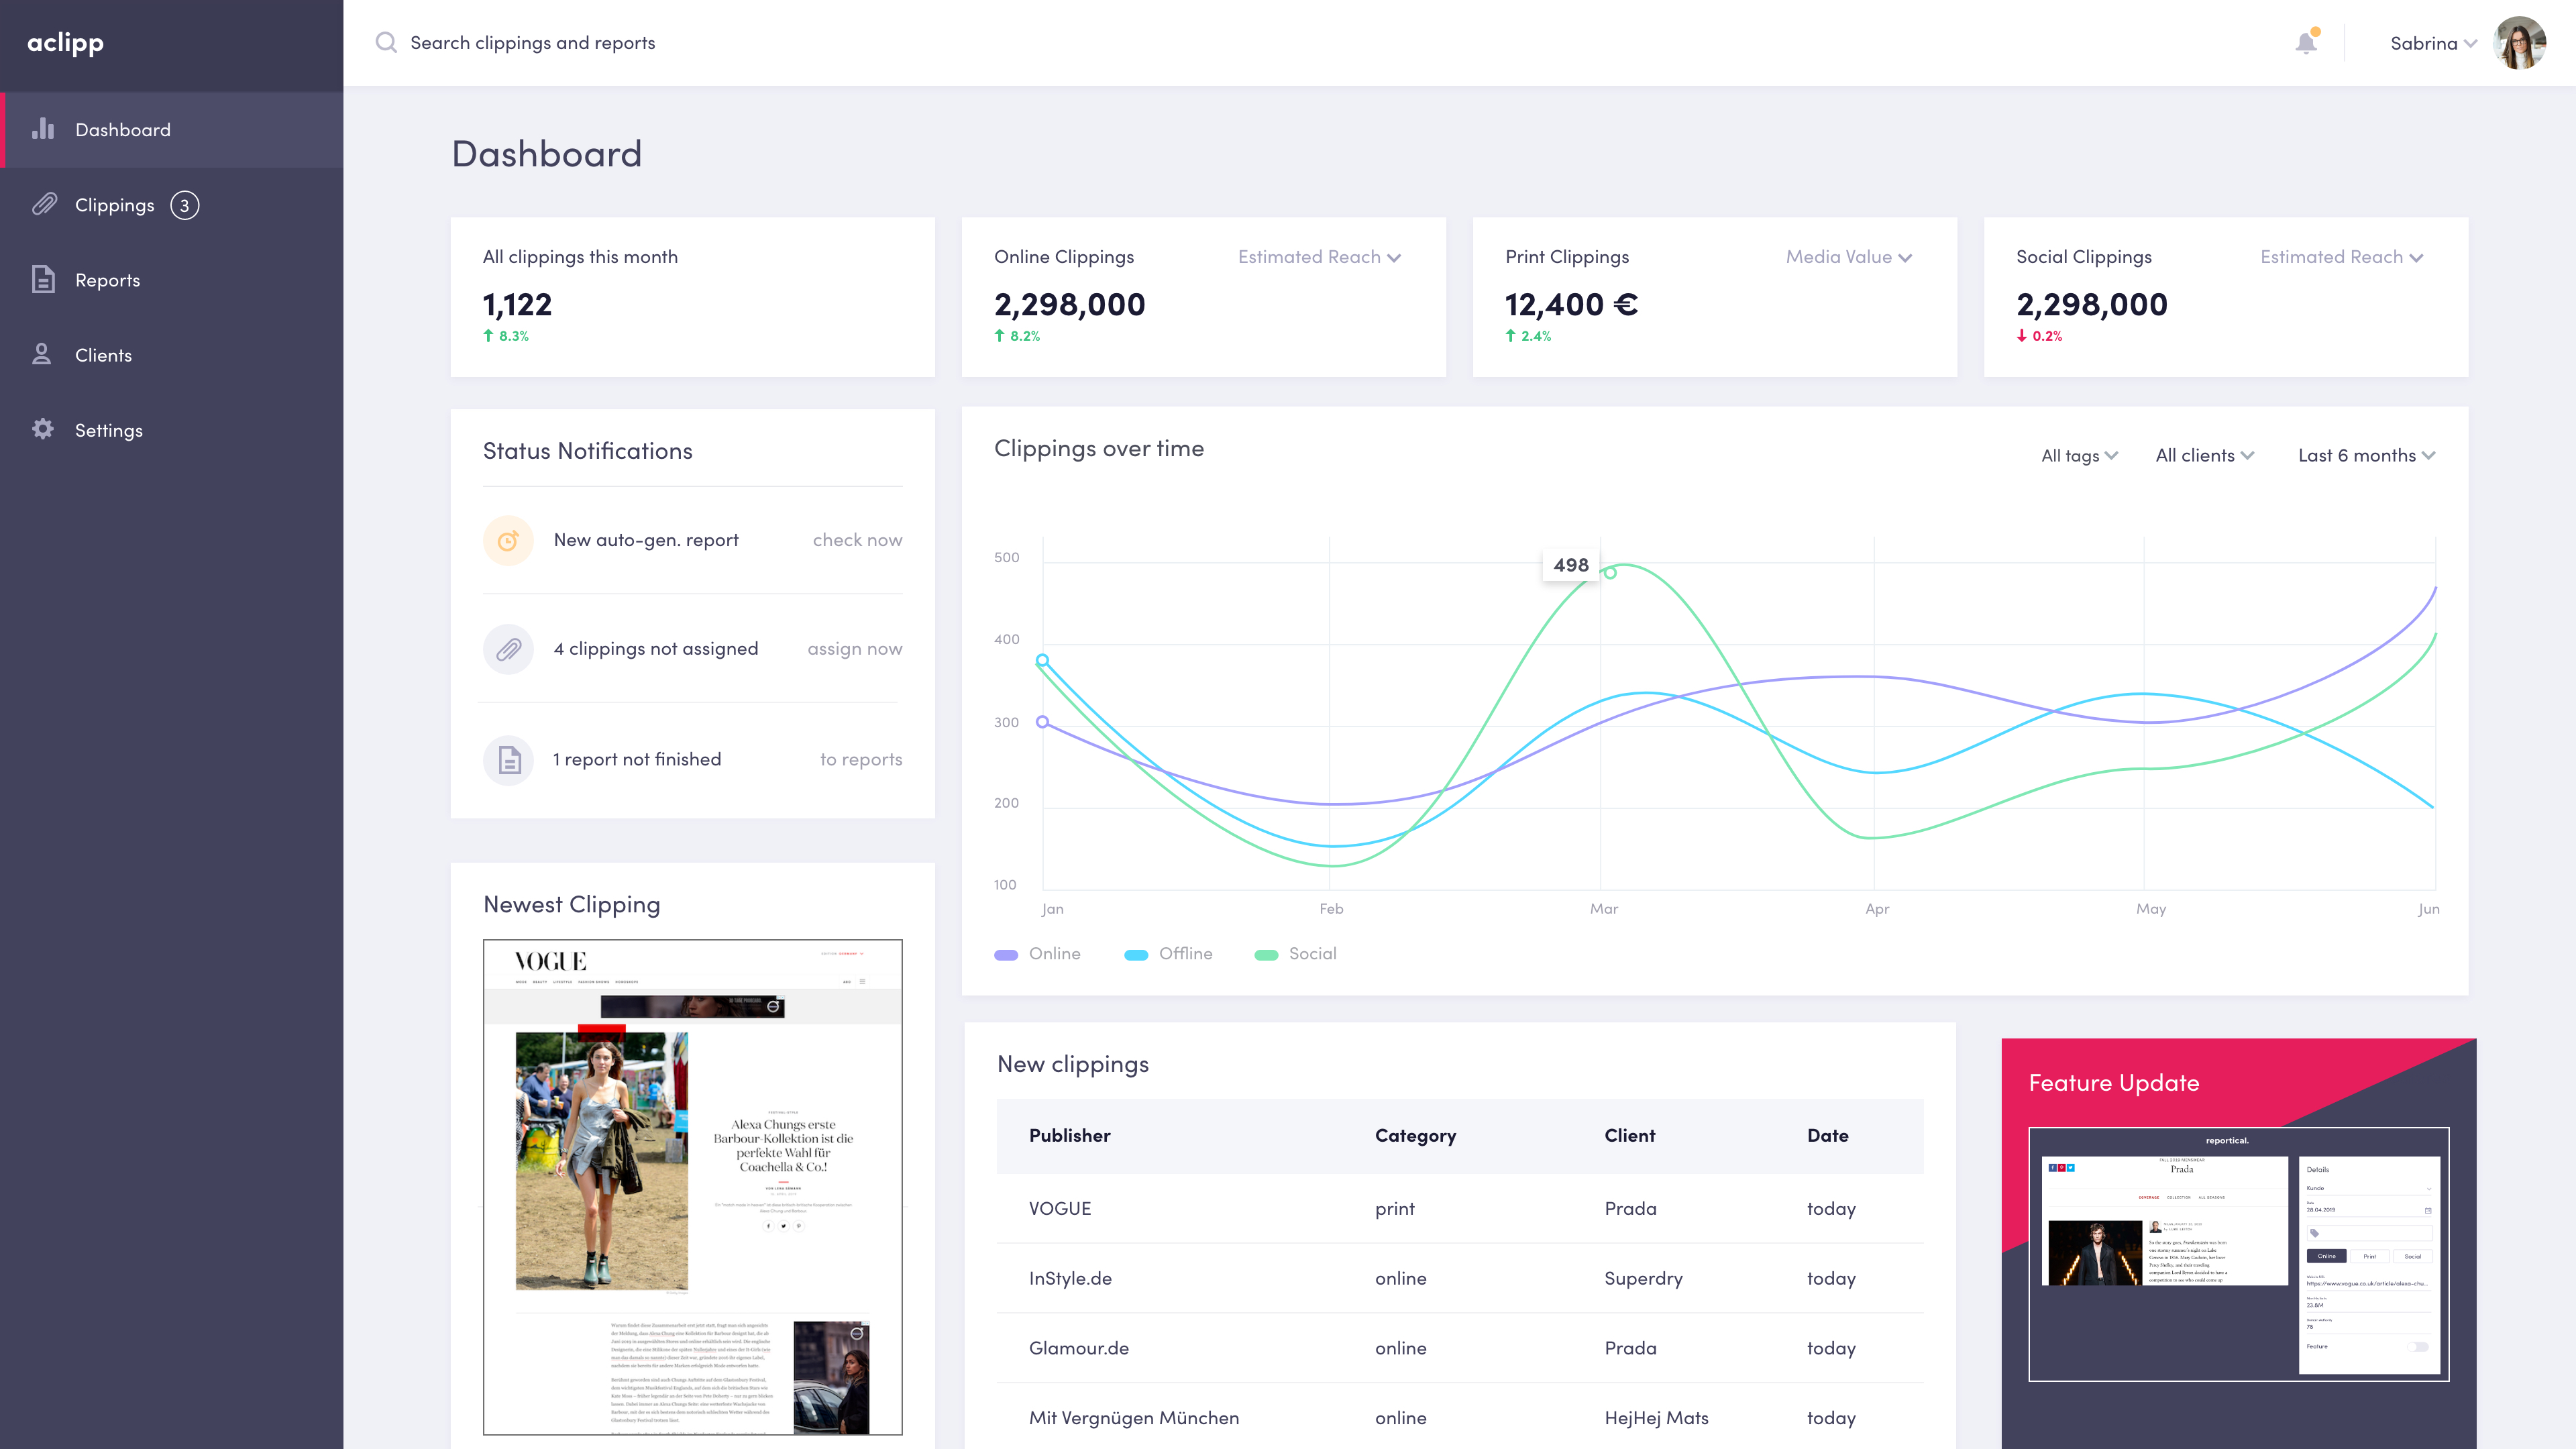 aclipp PR Dashboard with KPIs